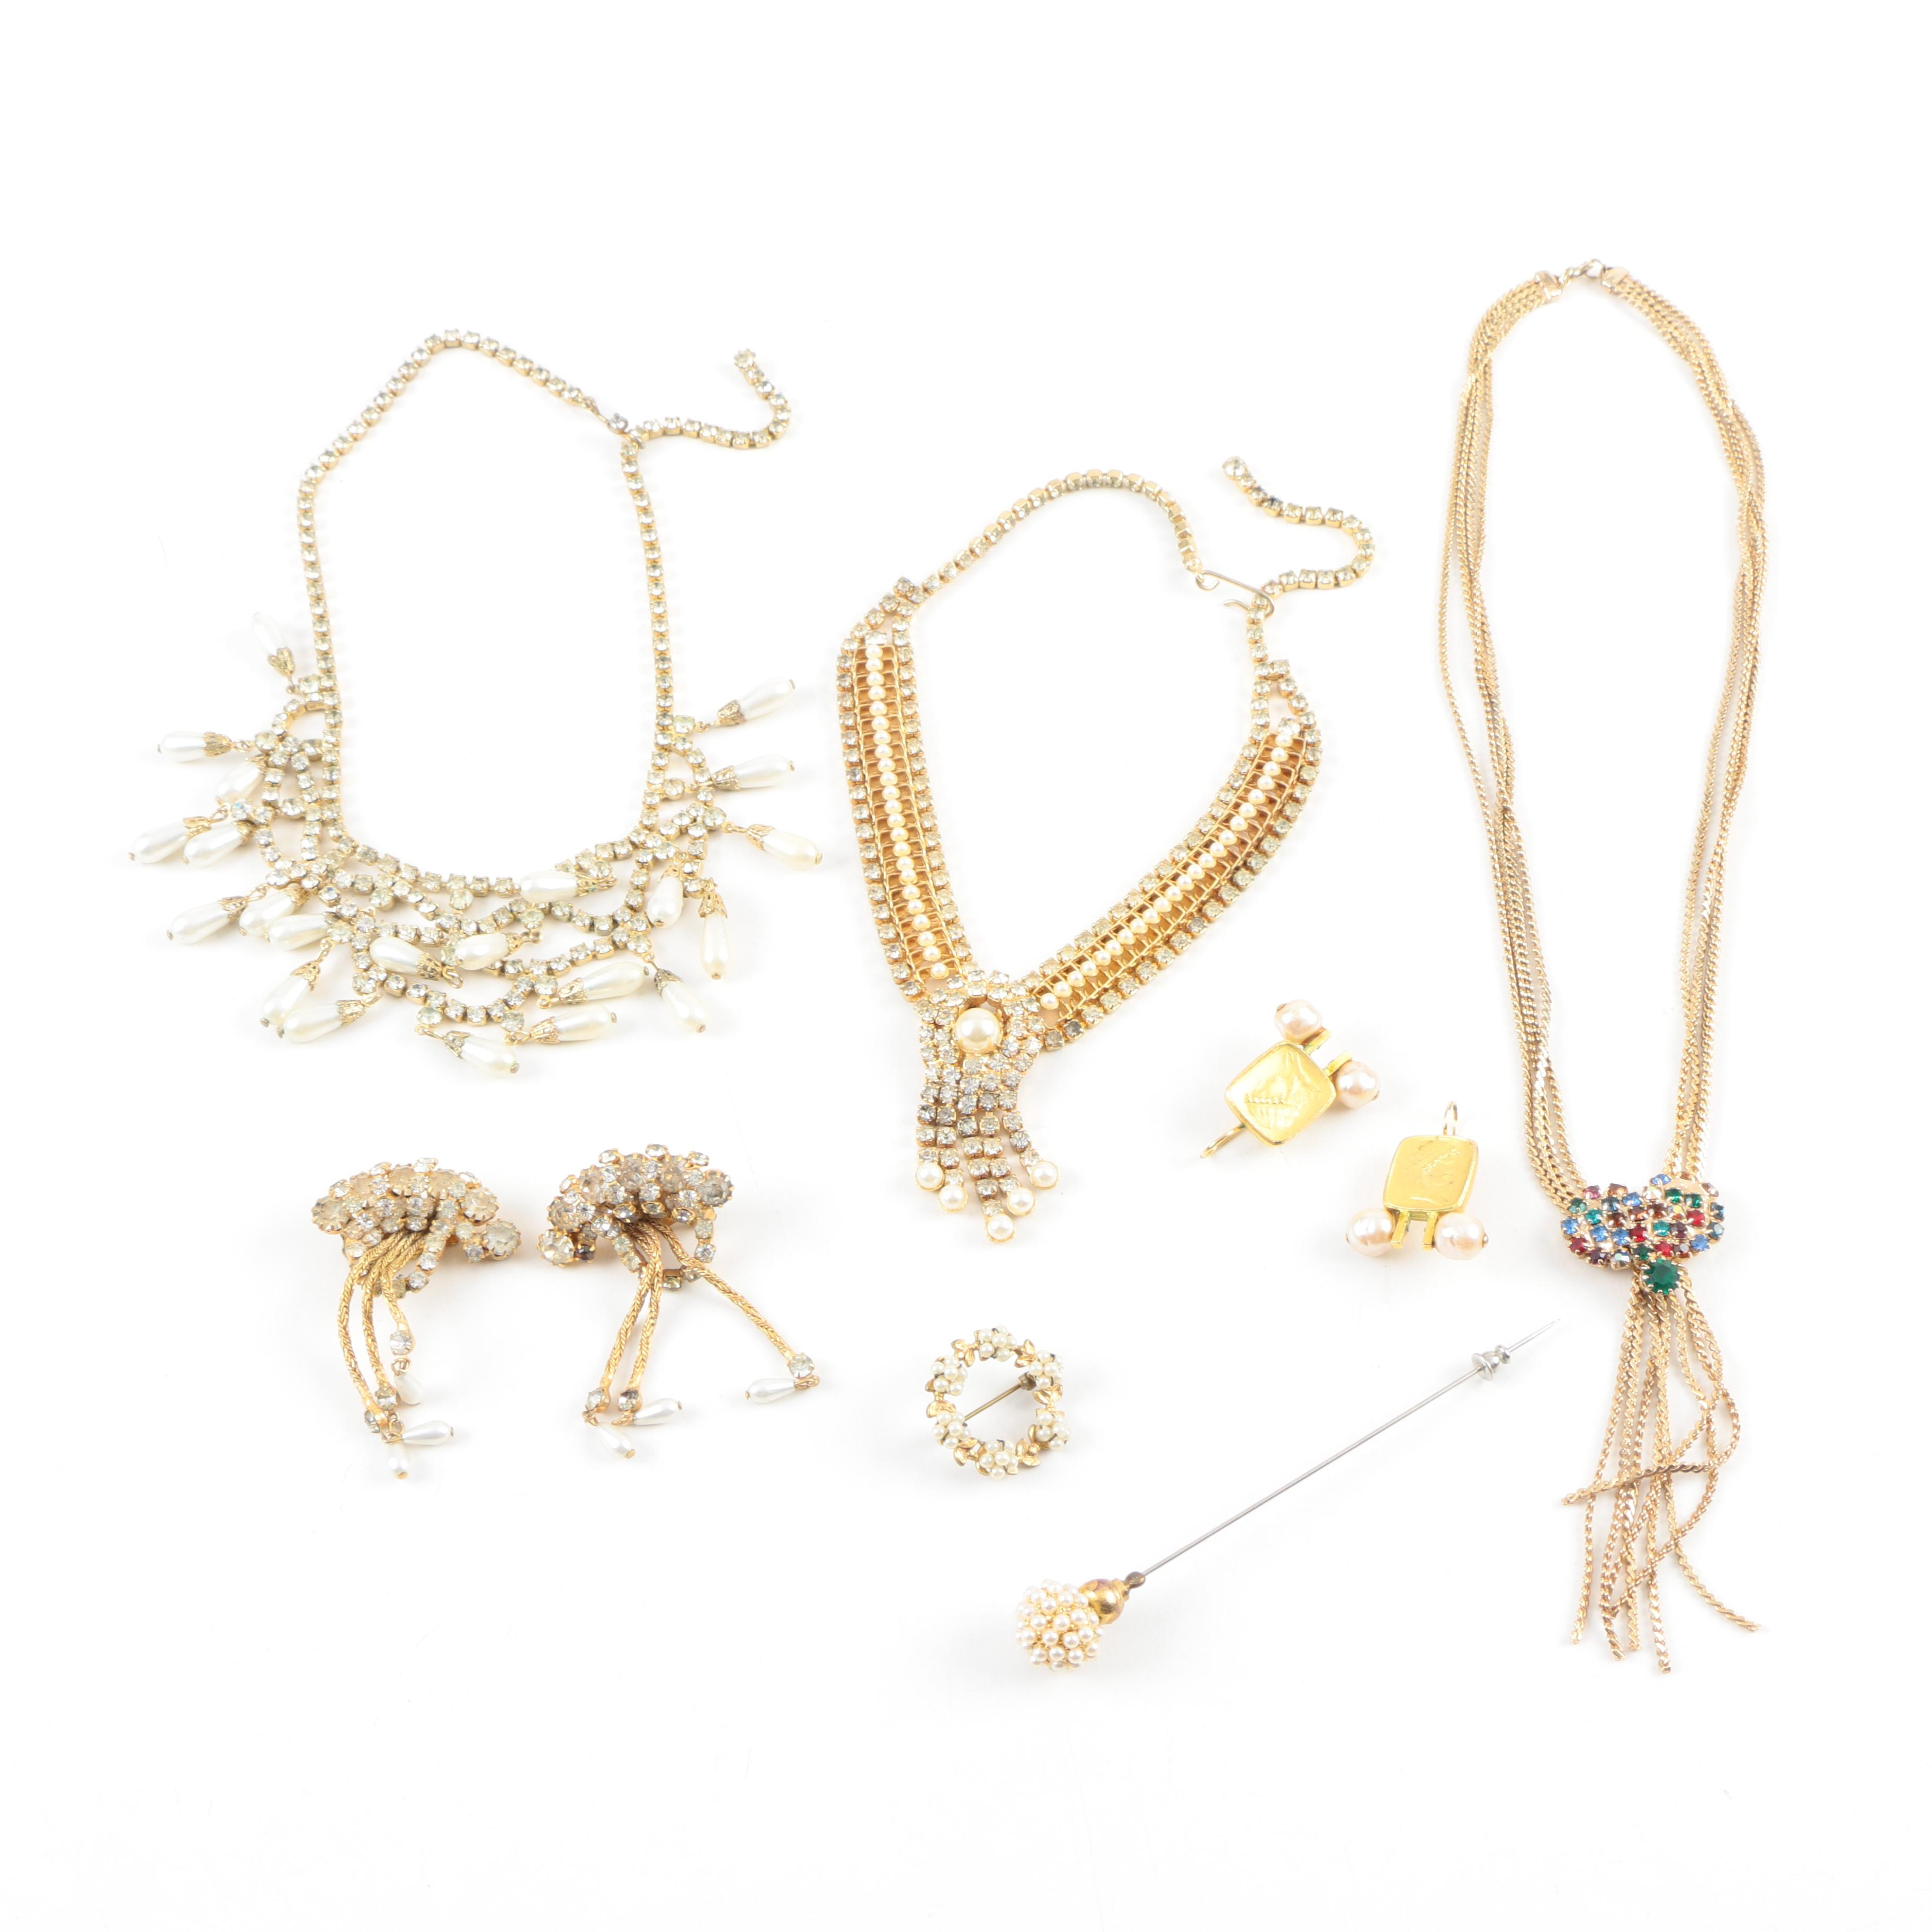 Assorted Gold Tone Jewelry Including Linda Levinson